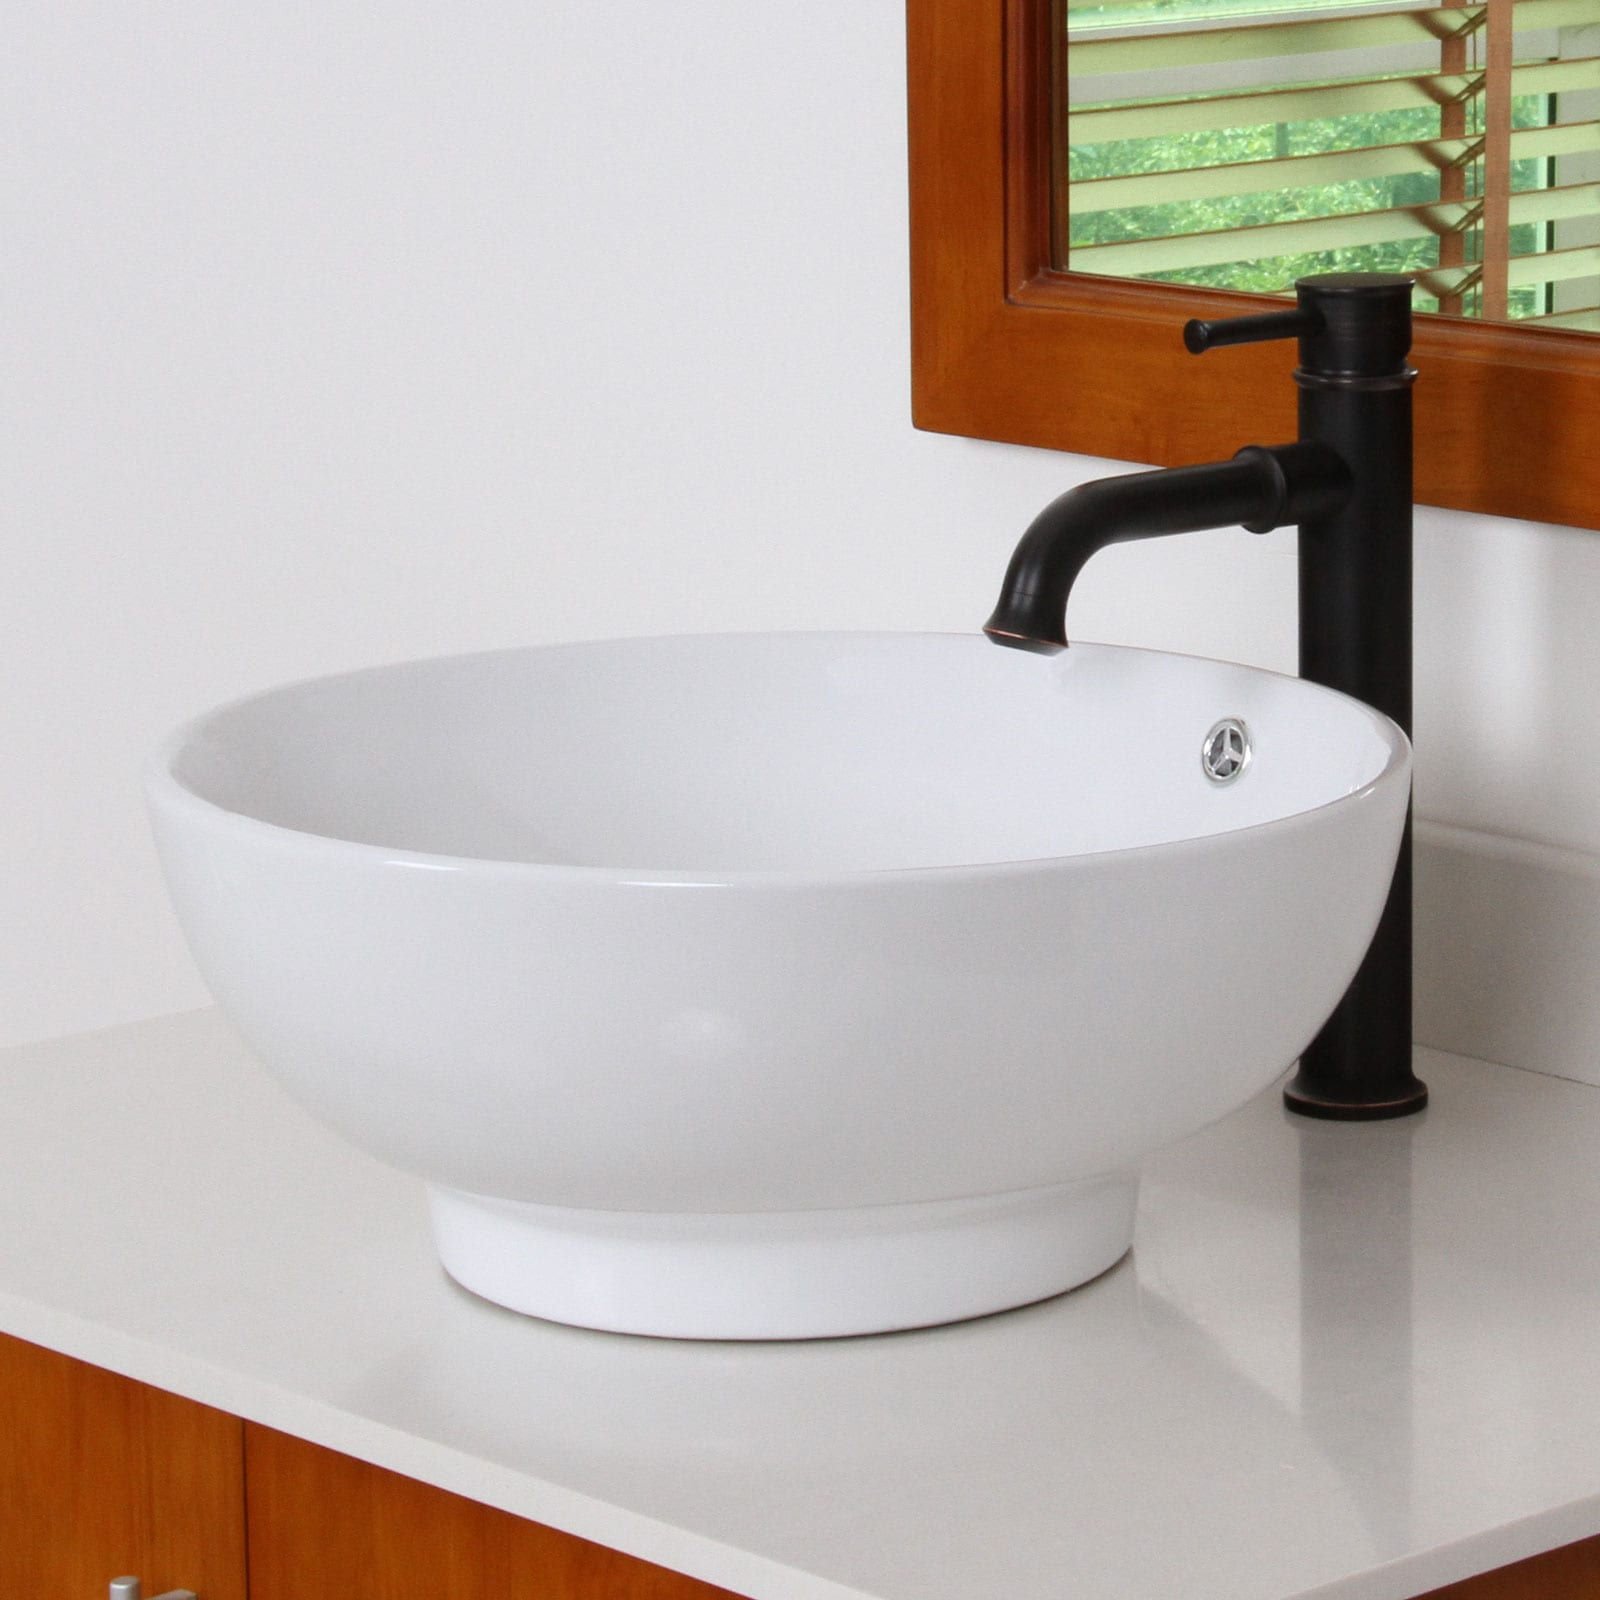 ELITE 9851F371067ORB High Temperature Grade A Ceramic Bathroom Sink With Round Design and Chrome Finish Faucet Combo